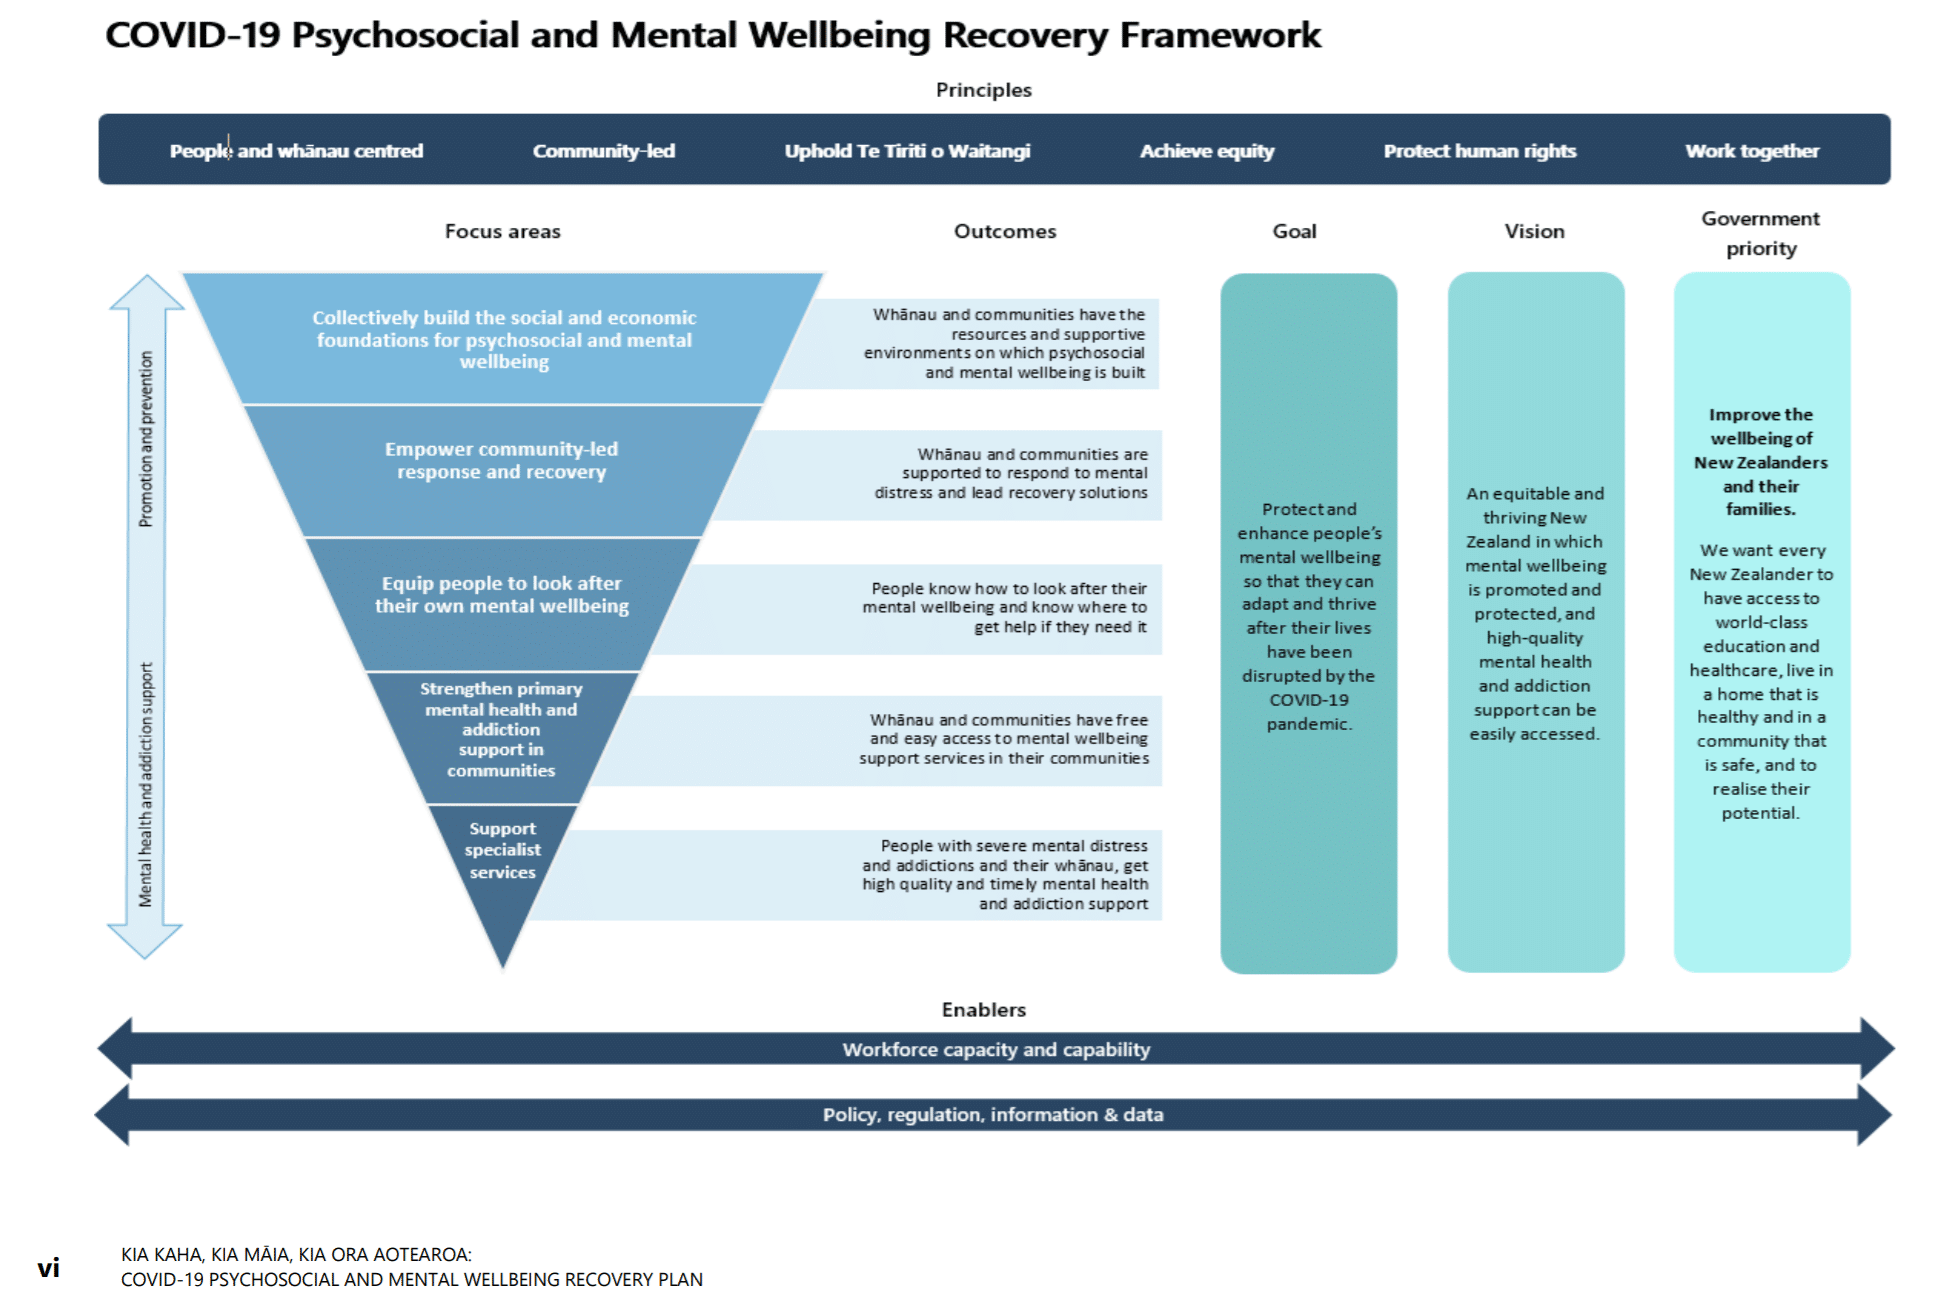 COVID-19 Psychosocial and Mental Wellbeing Recovery Framework